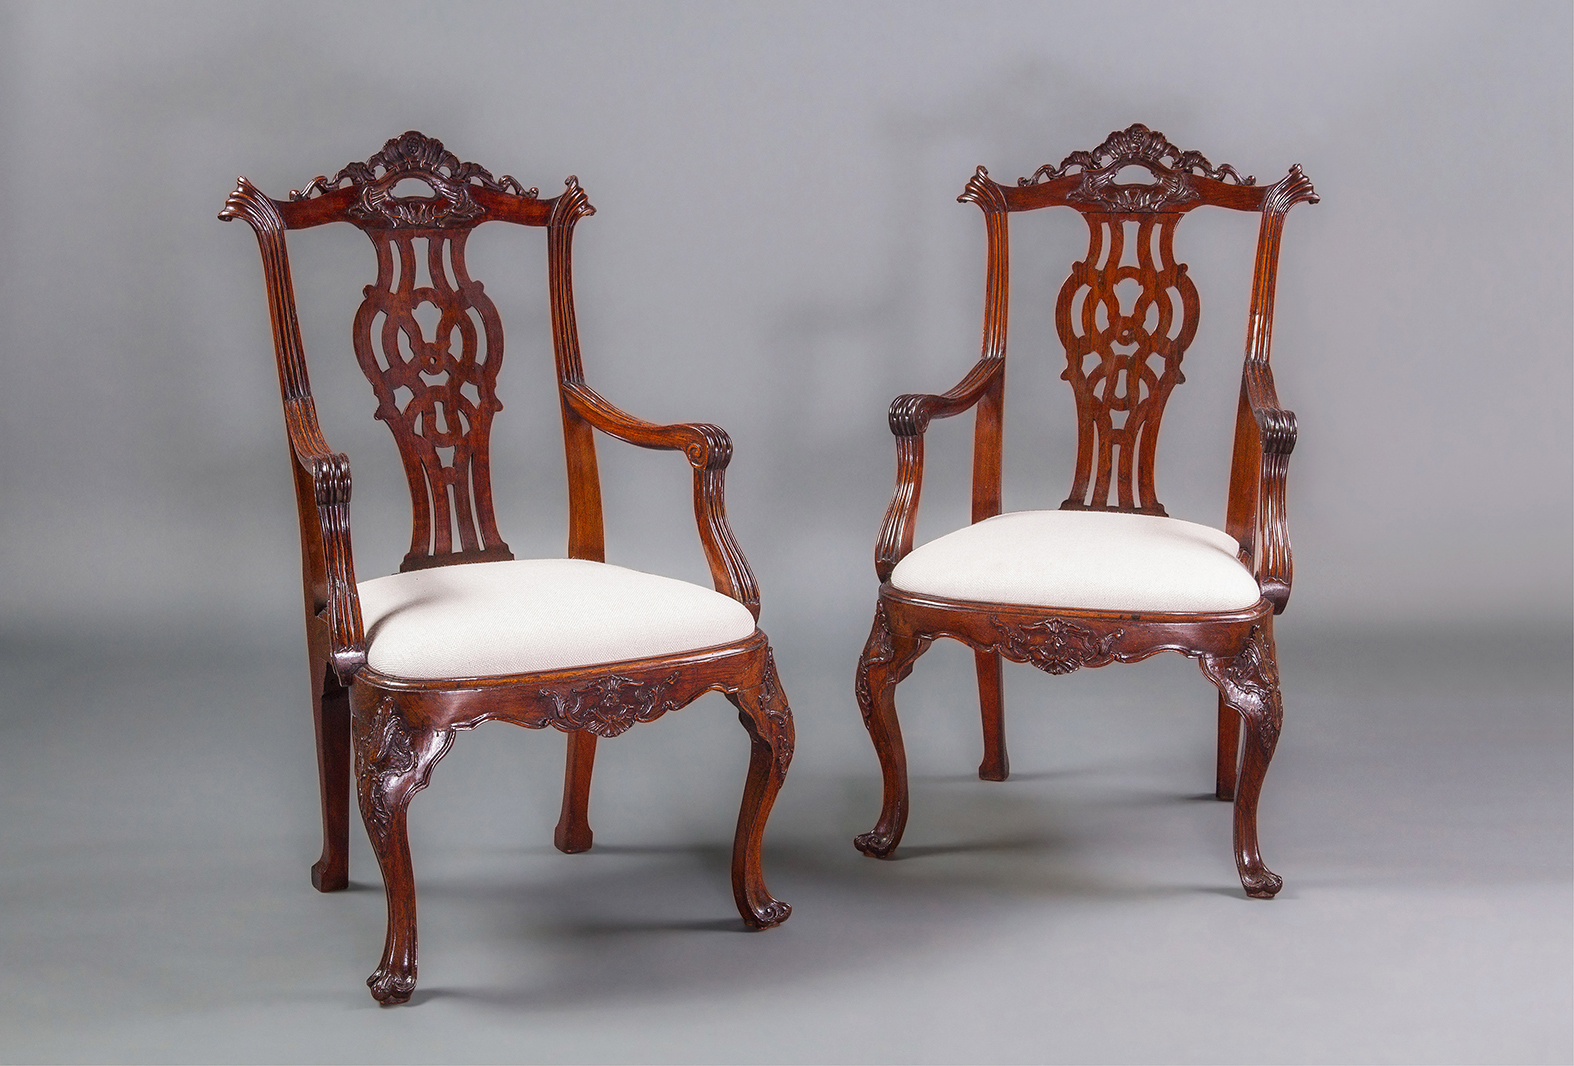 A Very Good Pair Of Mid 18th Century Portuguese Armchairs In The